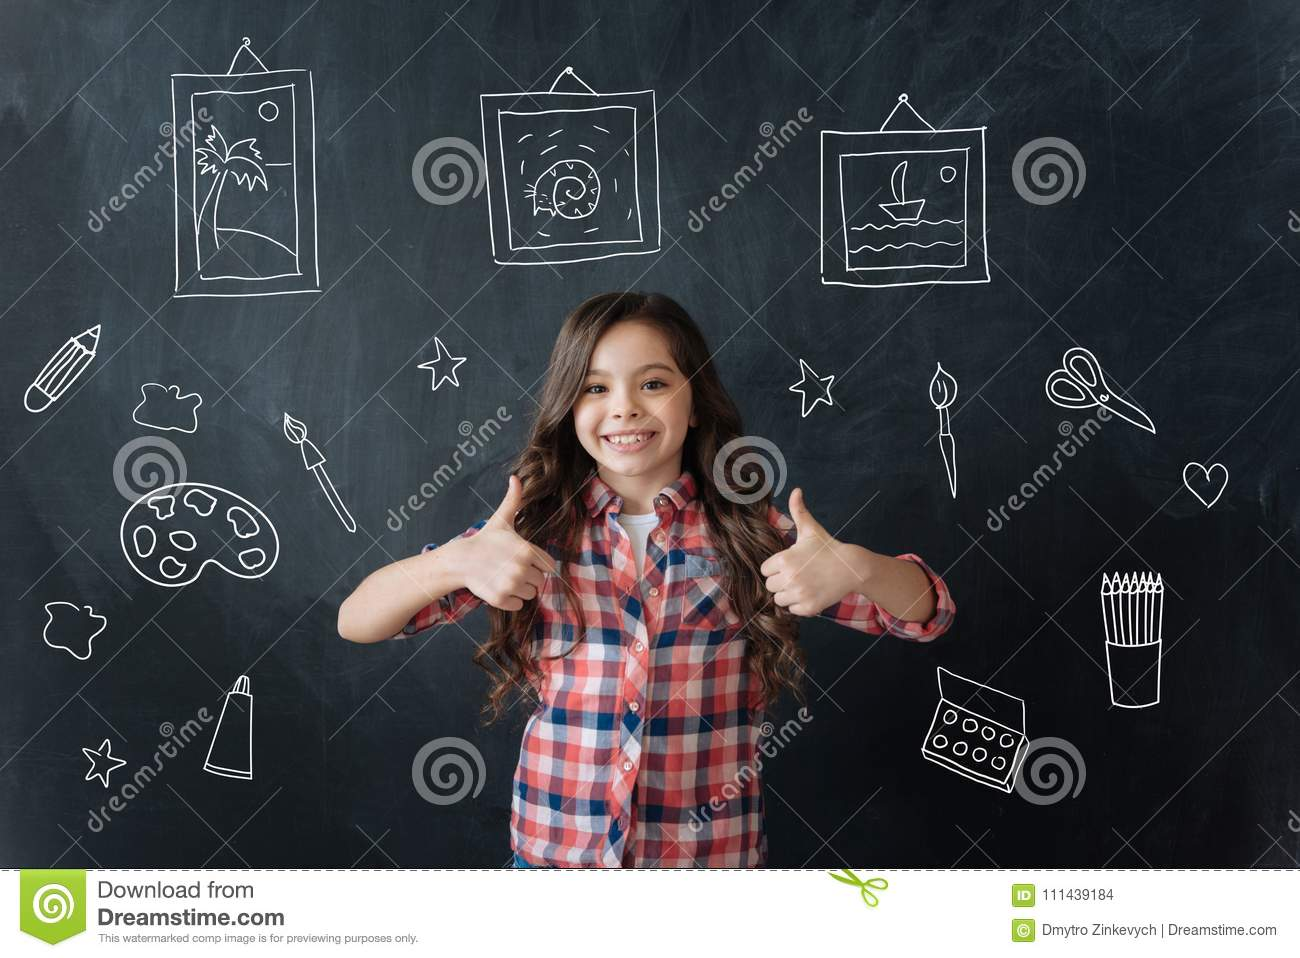 Lovely child feeling happy while showing her drawings